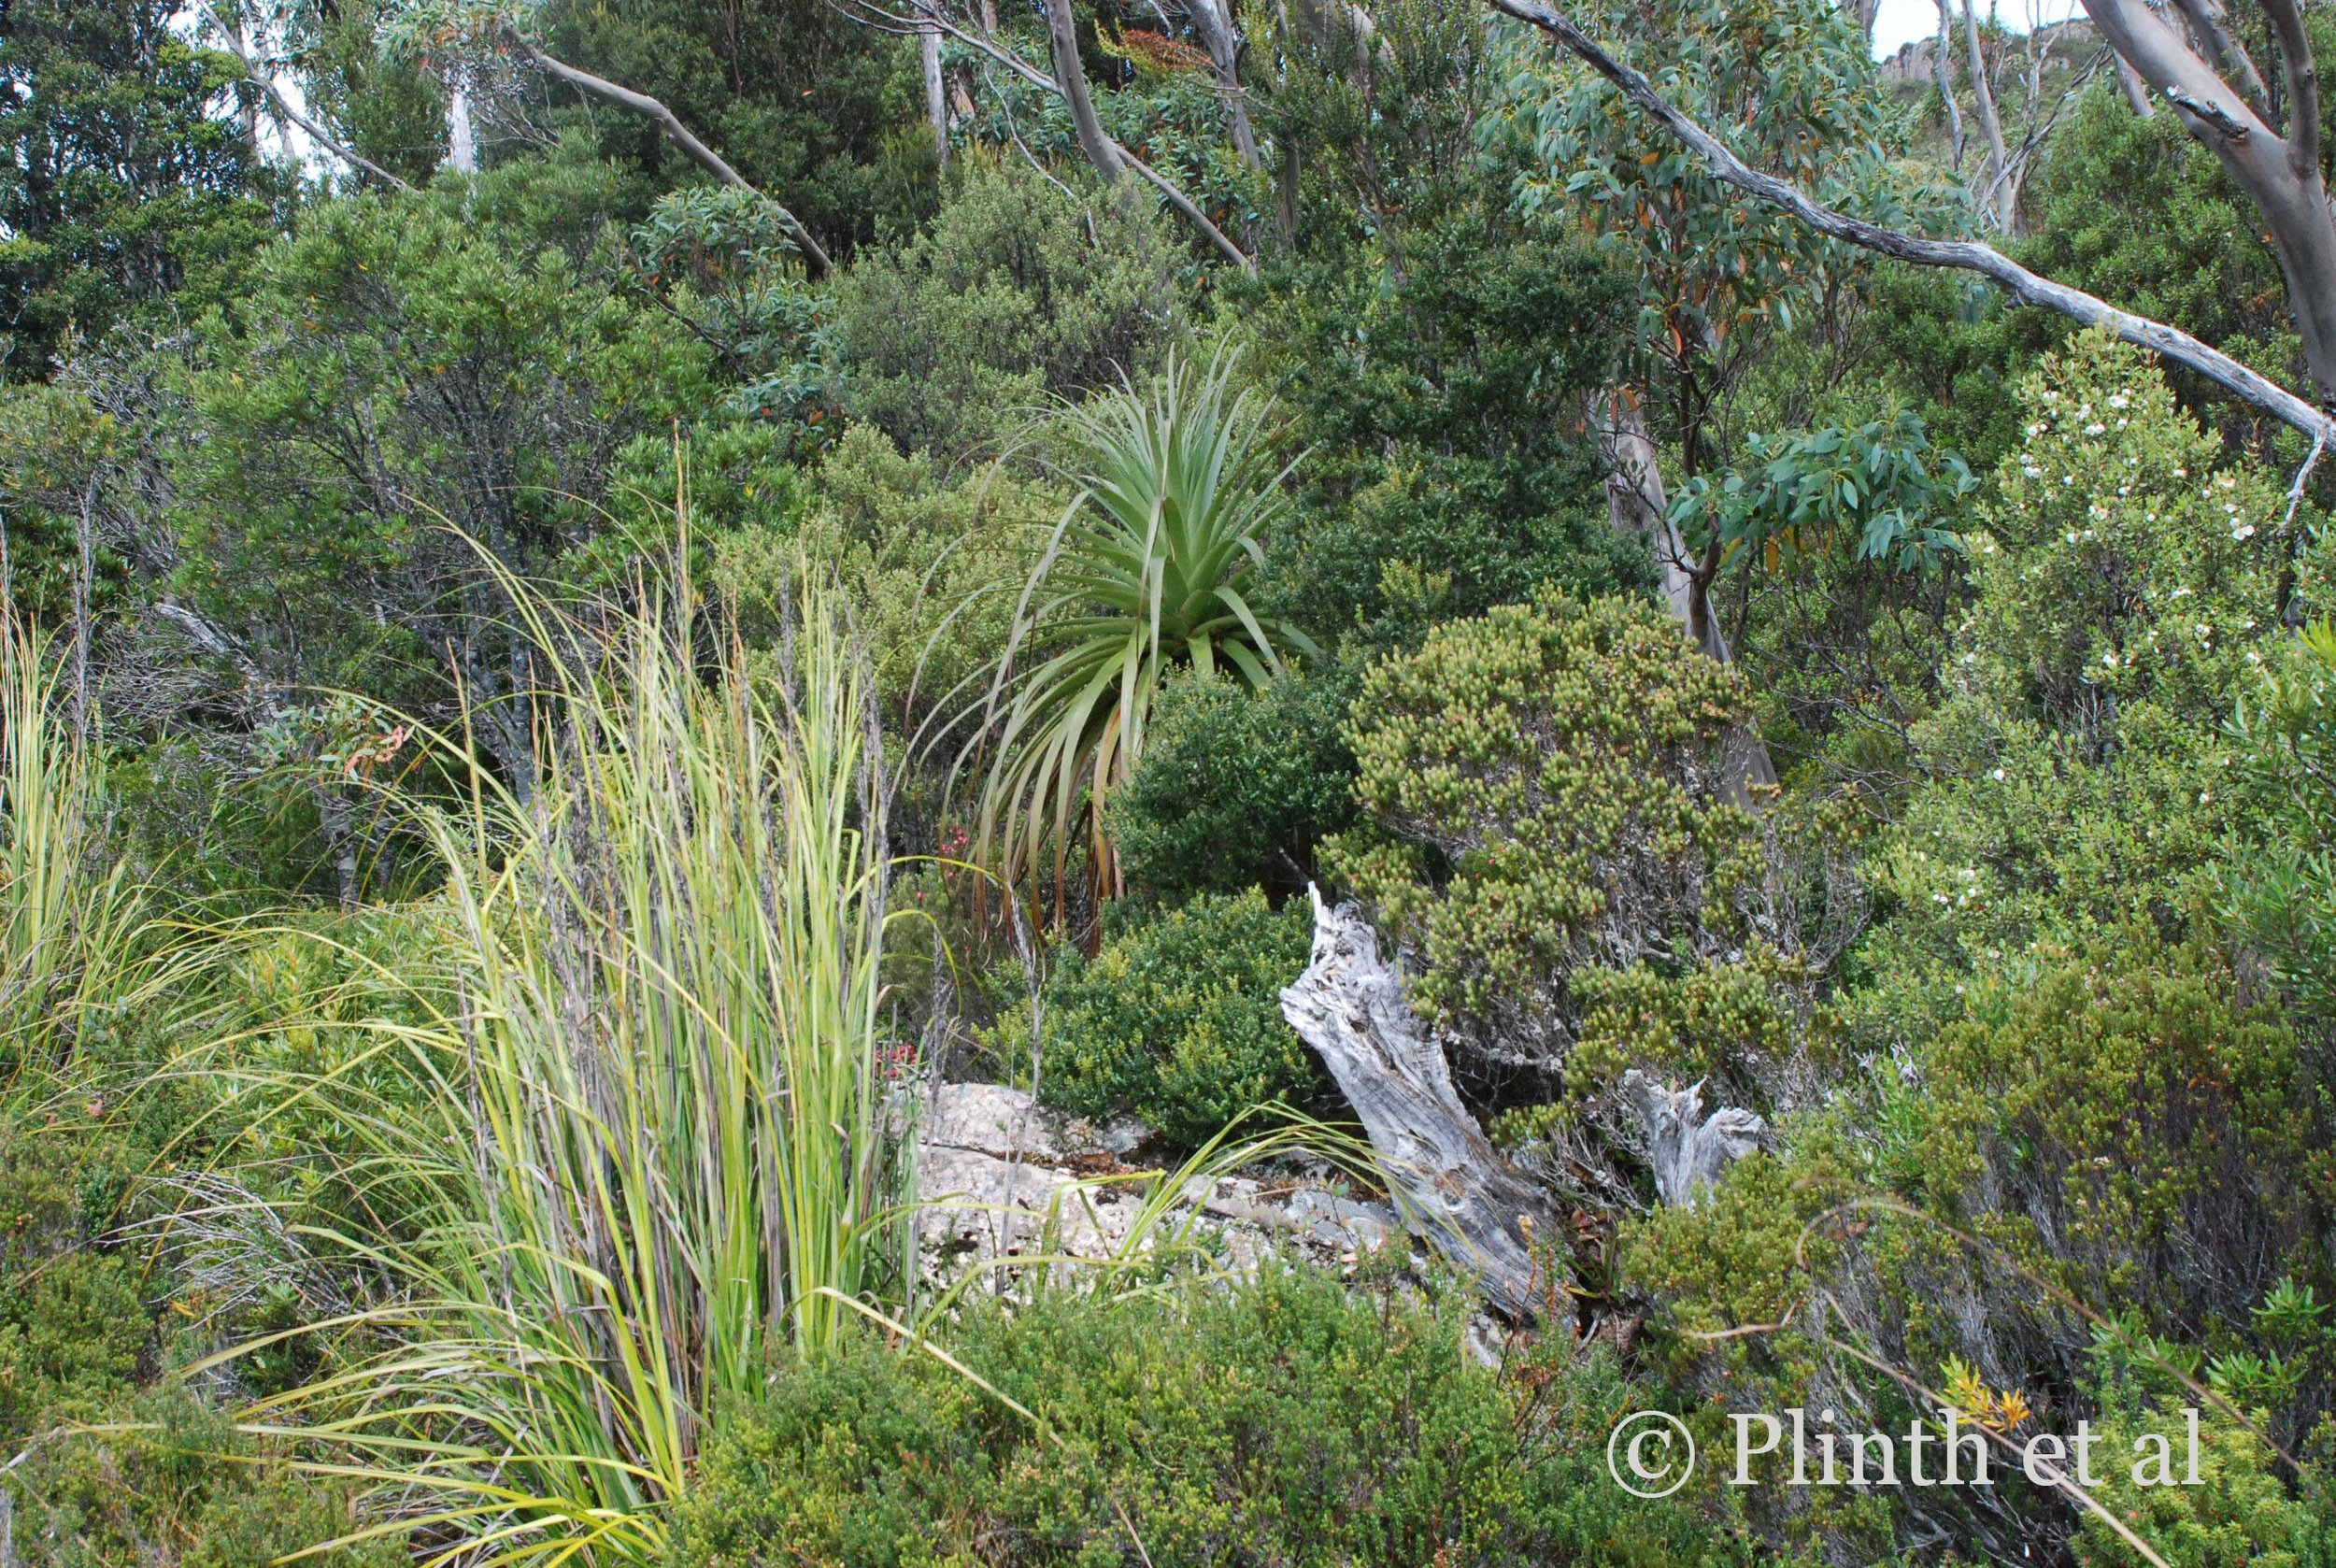 Without the Richea pandanifolia, the entire group would appear an undifferentiated amorphous mass, despite the fallen logs.